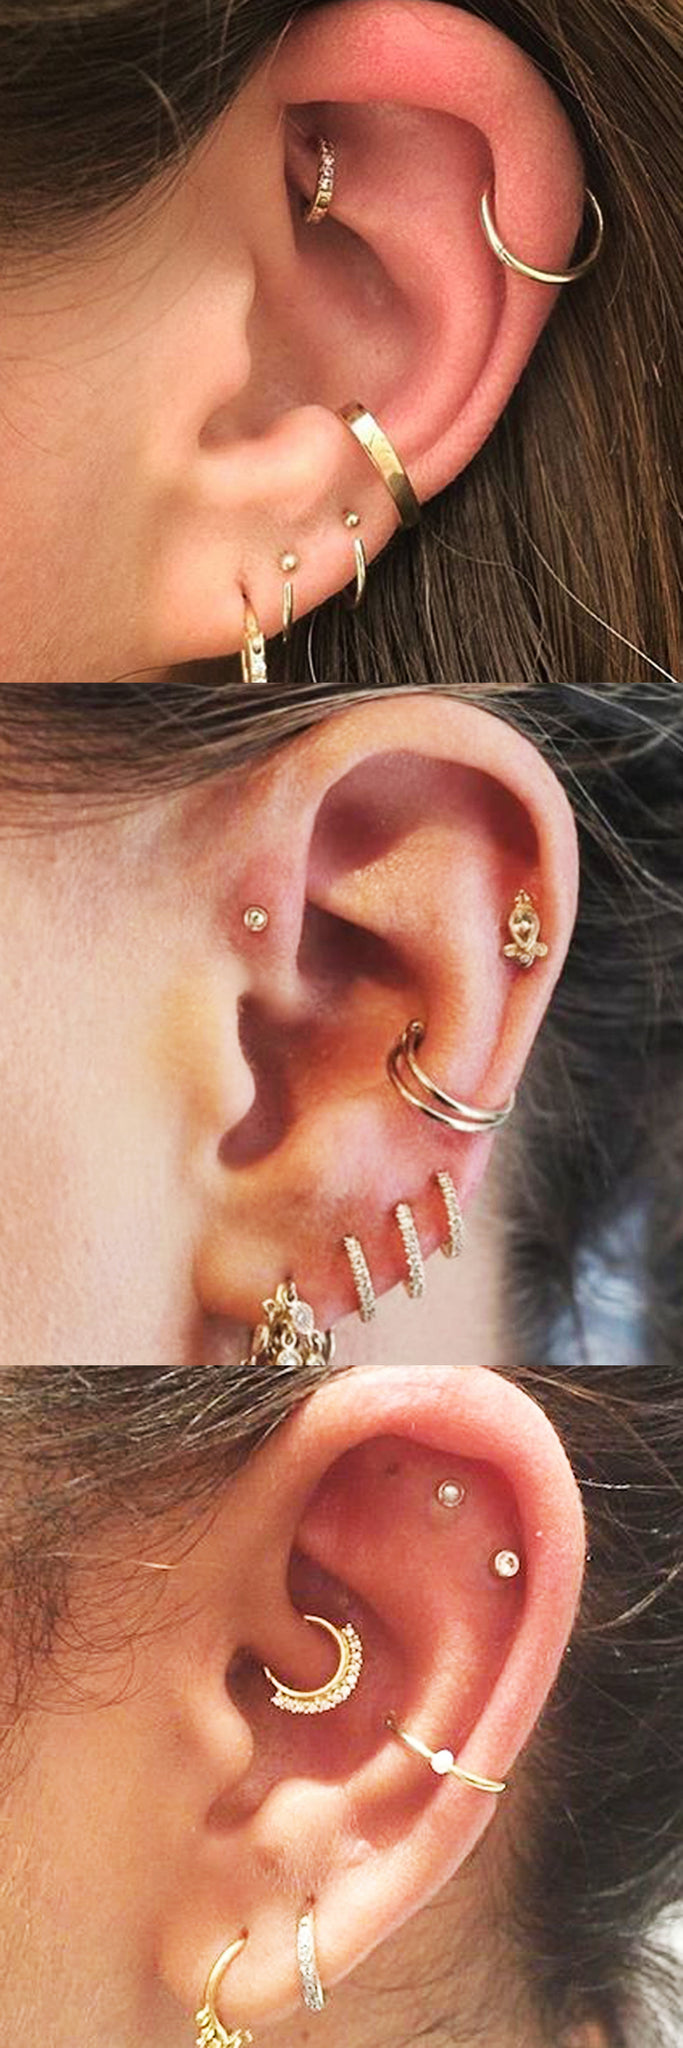 Cute Multiple Ear Piercing Gold Jewelry Combinations Ideas at MyBodiArt.com - Cartilage Ring - Helix Hoop - Rook Earring - Tragus Stud - Daith Jewelry